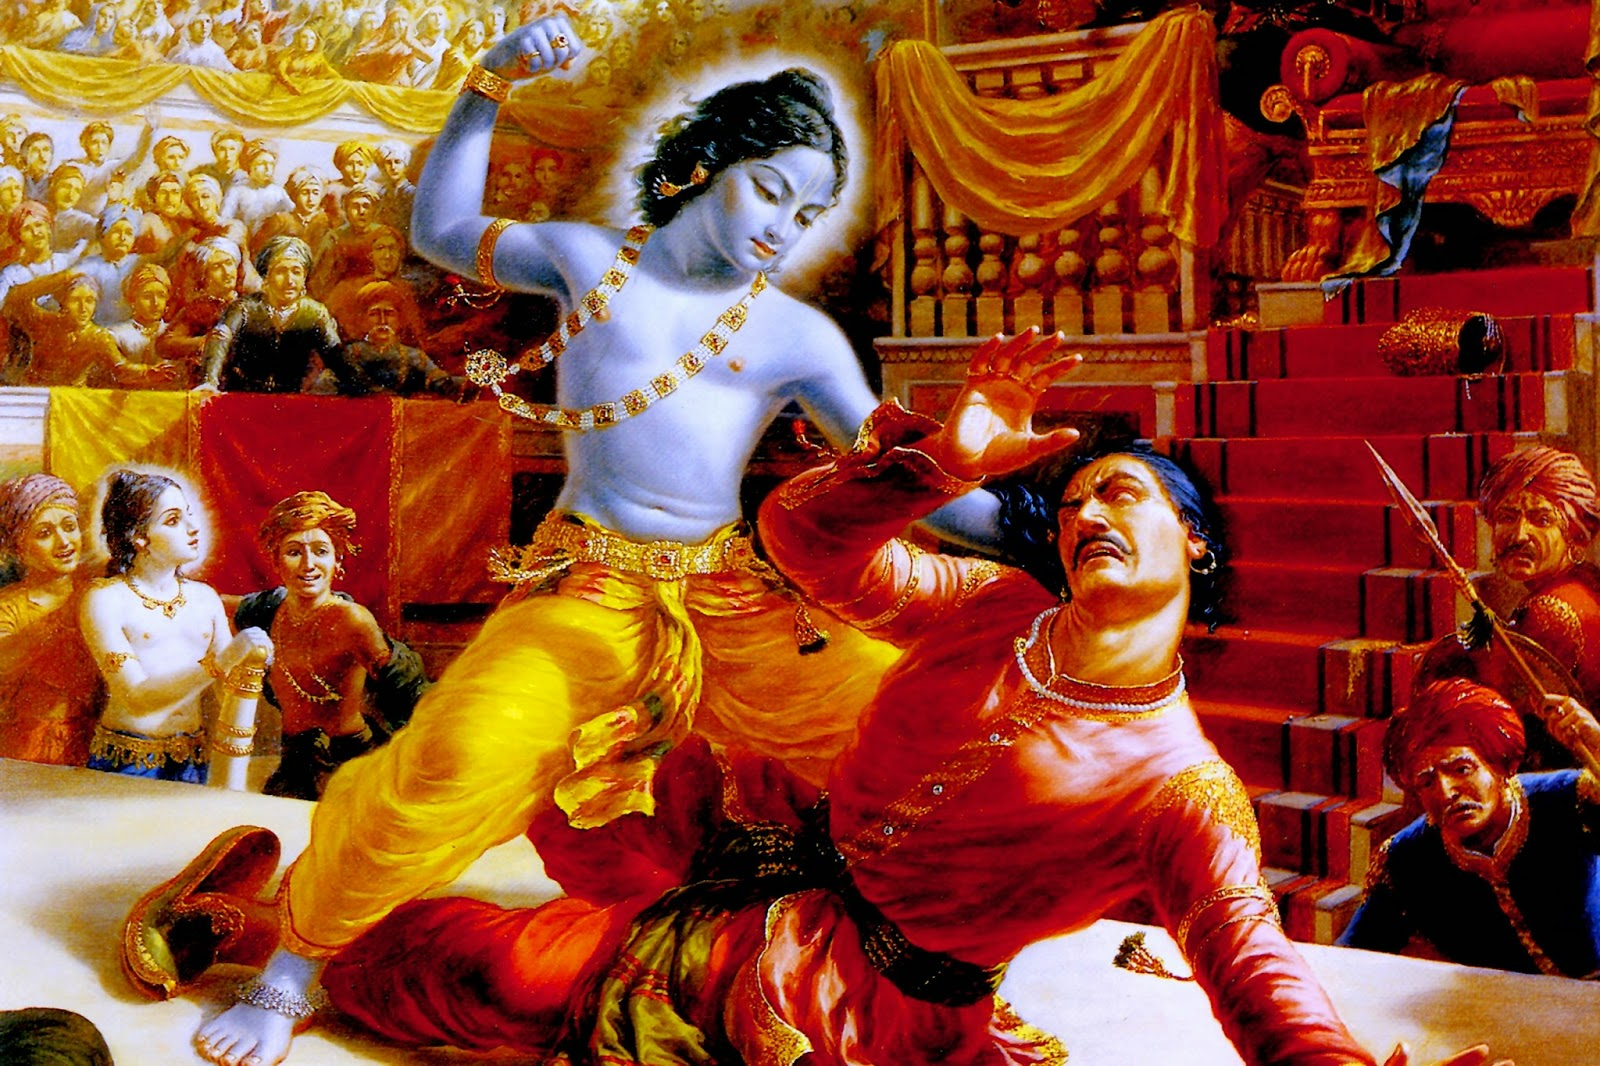 Sri Krishna Stories - Episode 20 - Krishna and Balaram come